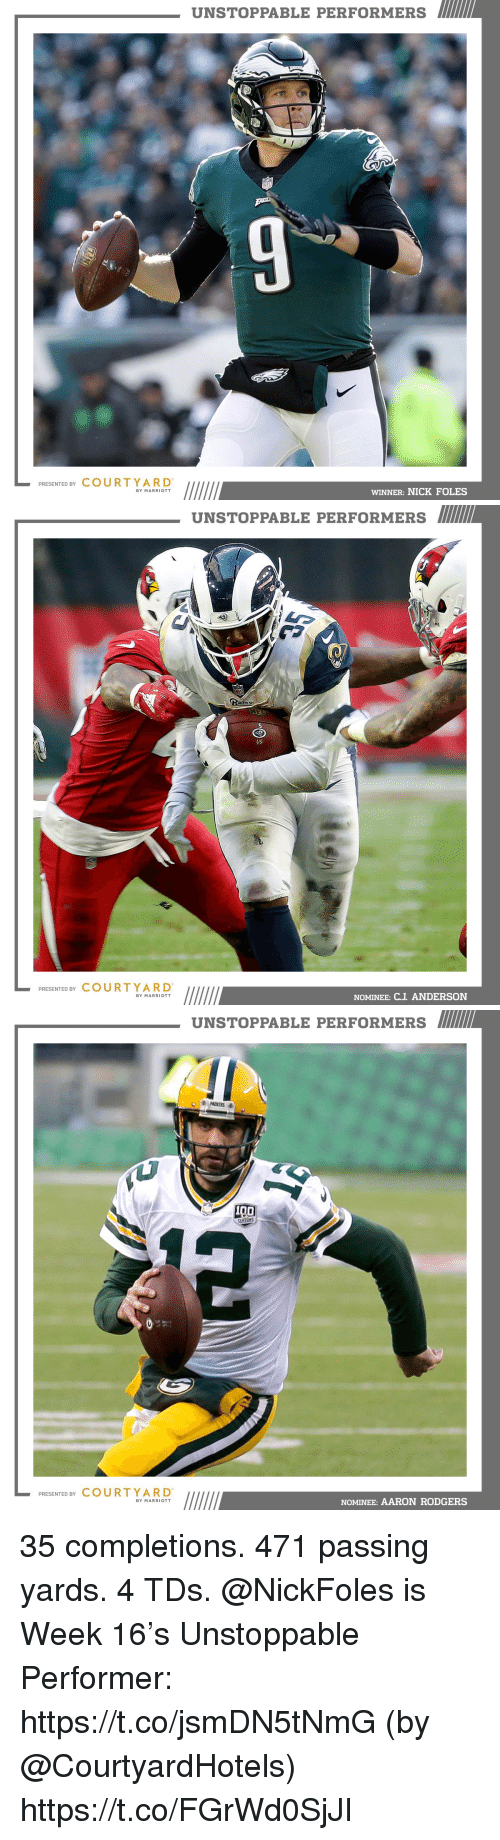 Aaron Rodgers, Memes, and Marriott: UNSTOPPABLE PERFORMERS  NF  PRESENTED BY COURT YARD  WINNER: NICK FOLES  BY MARRIOTT   UNSTOPPABLE PERFORMERS MI  2  PRESENTED BY COURTYARD  NOMINEE: C.J ANDERSON  BY MARRIOTT   UNSTOPPABLE PERFORMERS  PRESENTED BY COURTYARD  NOMINEE: AARON RODGERS  BY MARRIOTT 35 completions. 471 passing yards. 4 TDs.  @NickFoles is Week 16's Unstoppable Performer: https://t.co/jsmDN5tNmG (by @CourtyardHotels) https://t.co/FGrWd0SjJI